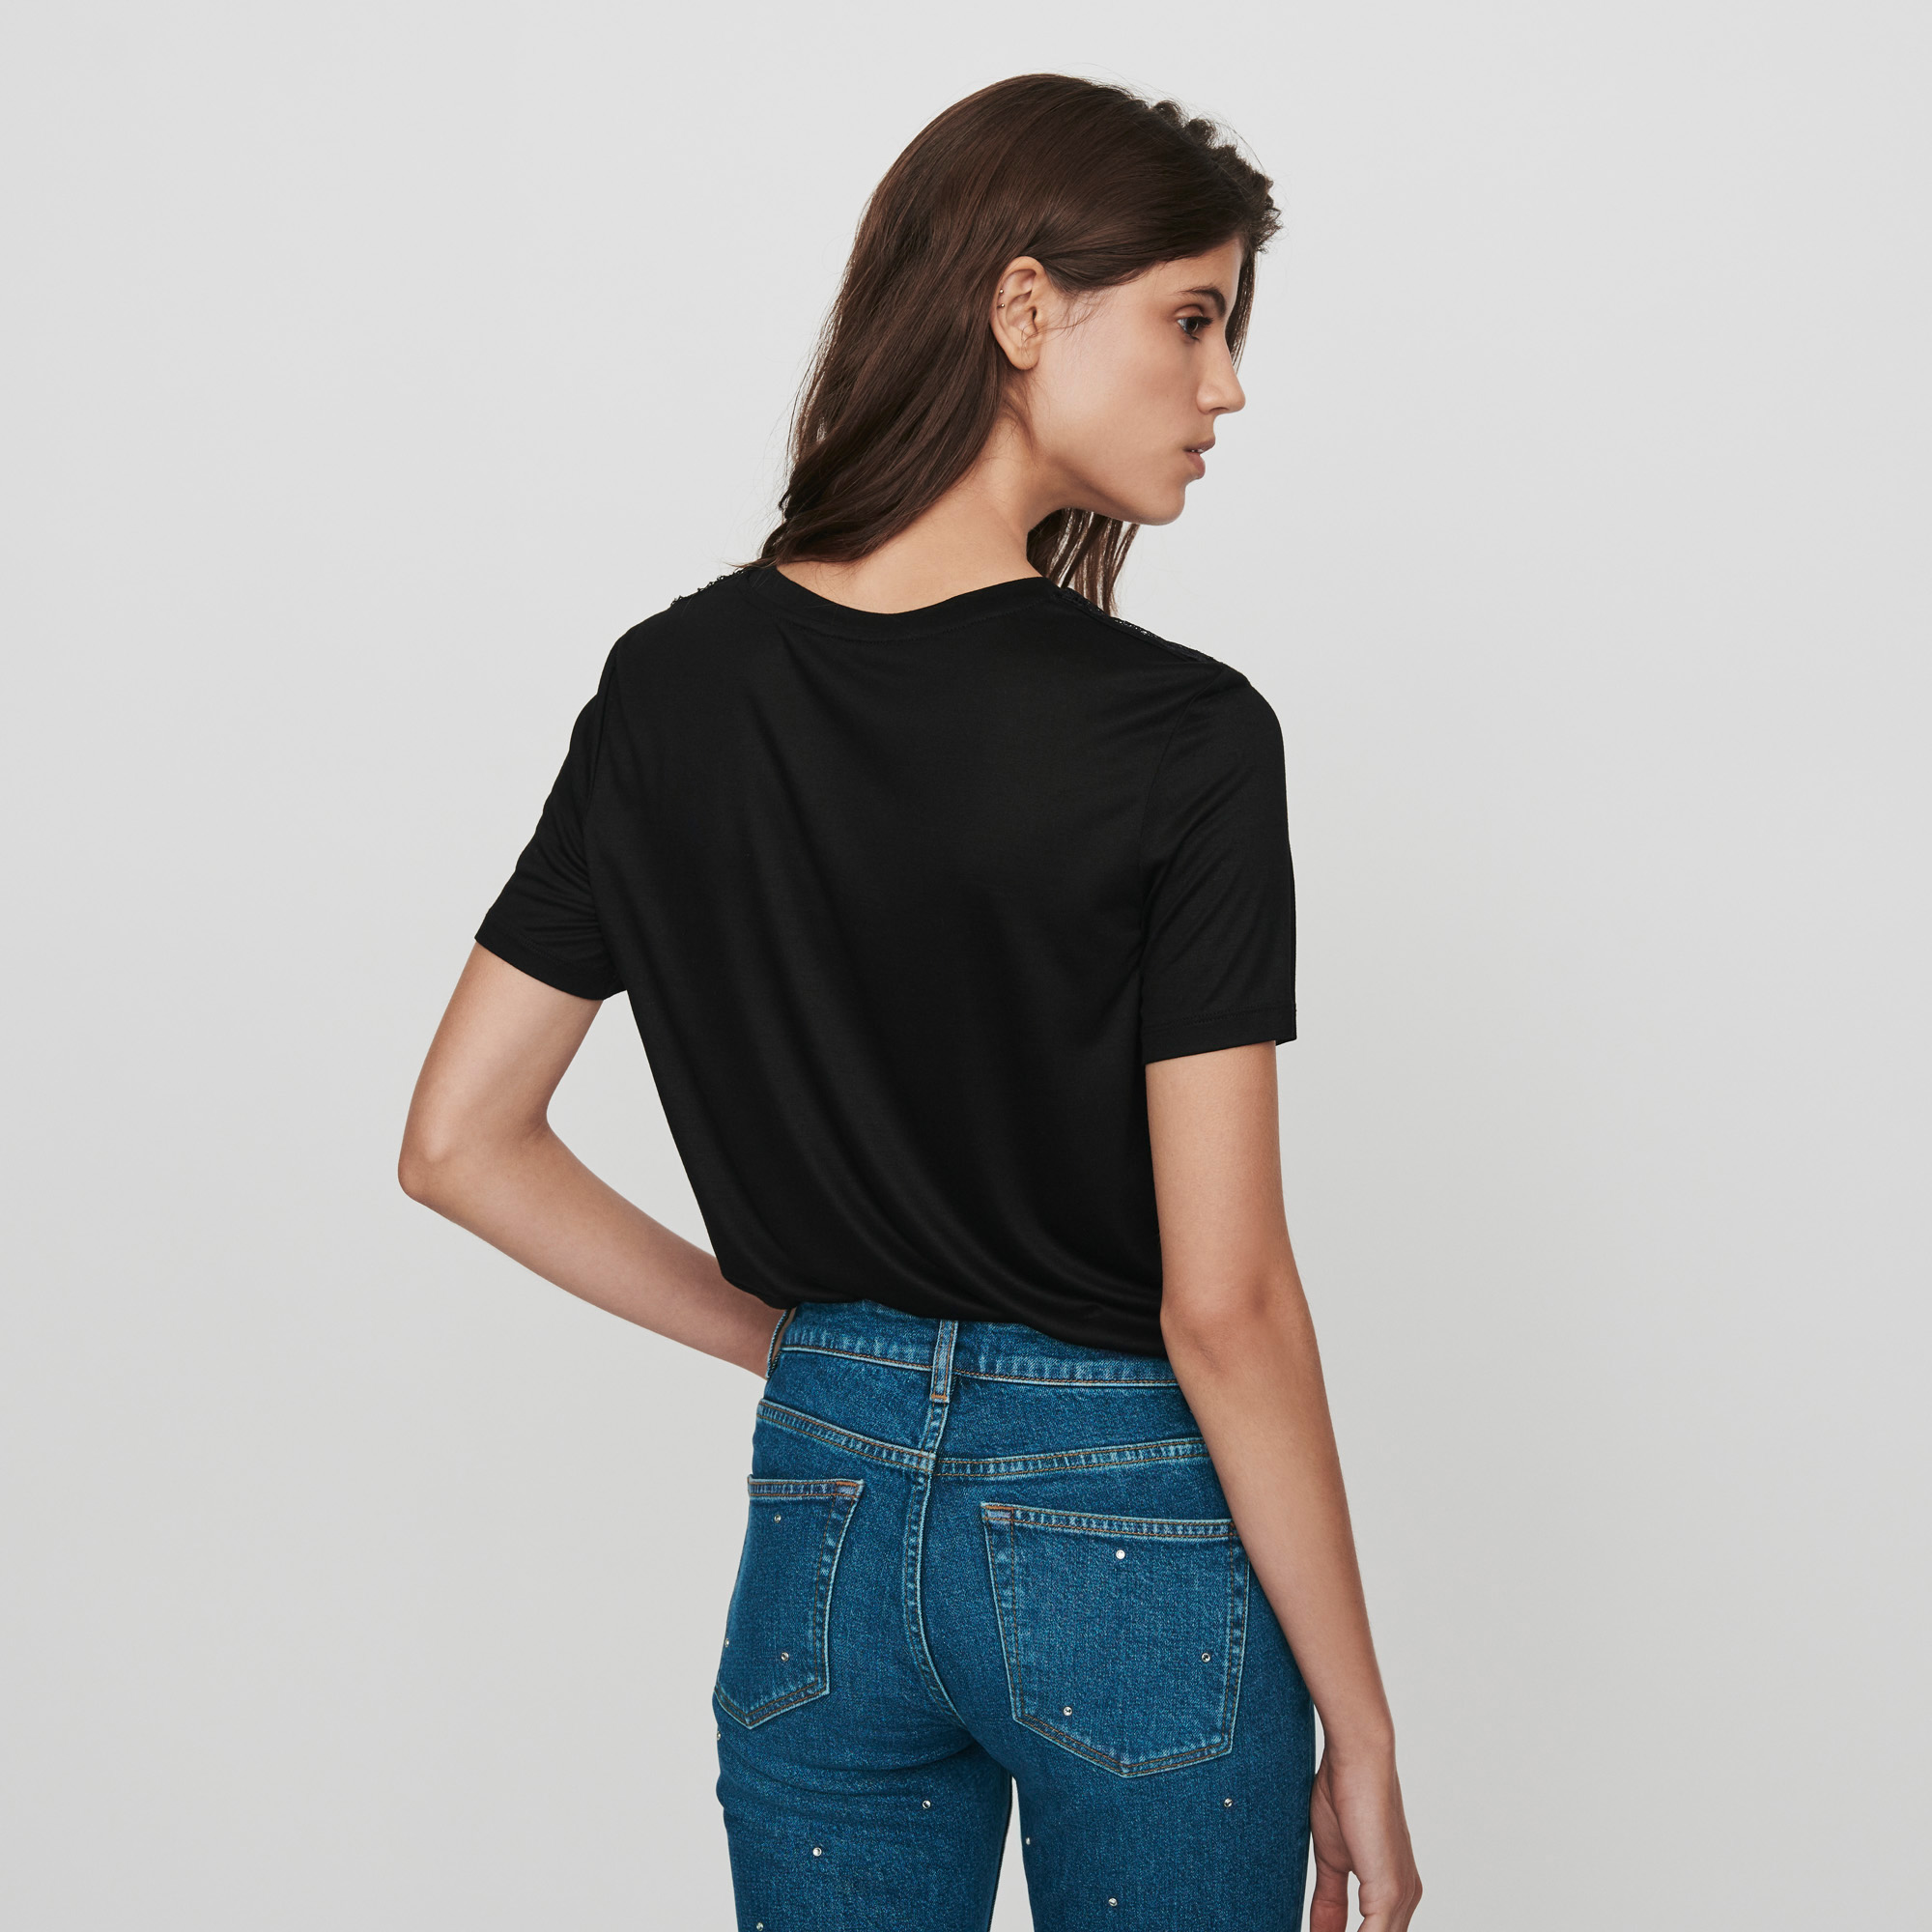 Tee Shirt With Lace Trim - Black